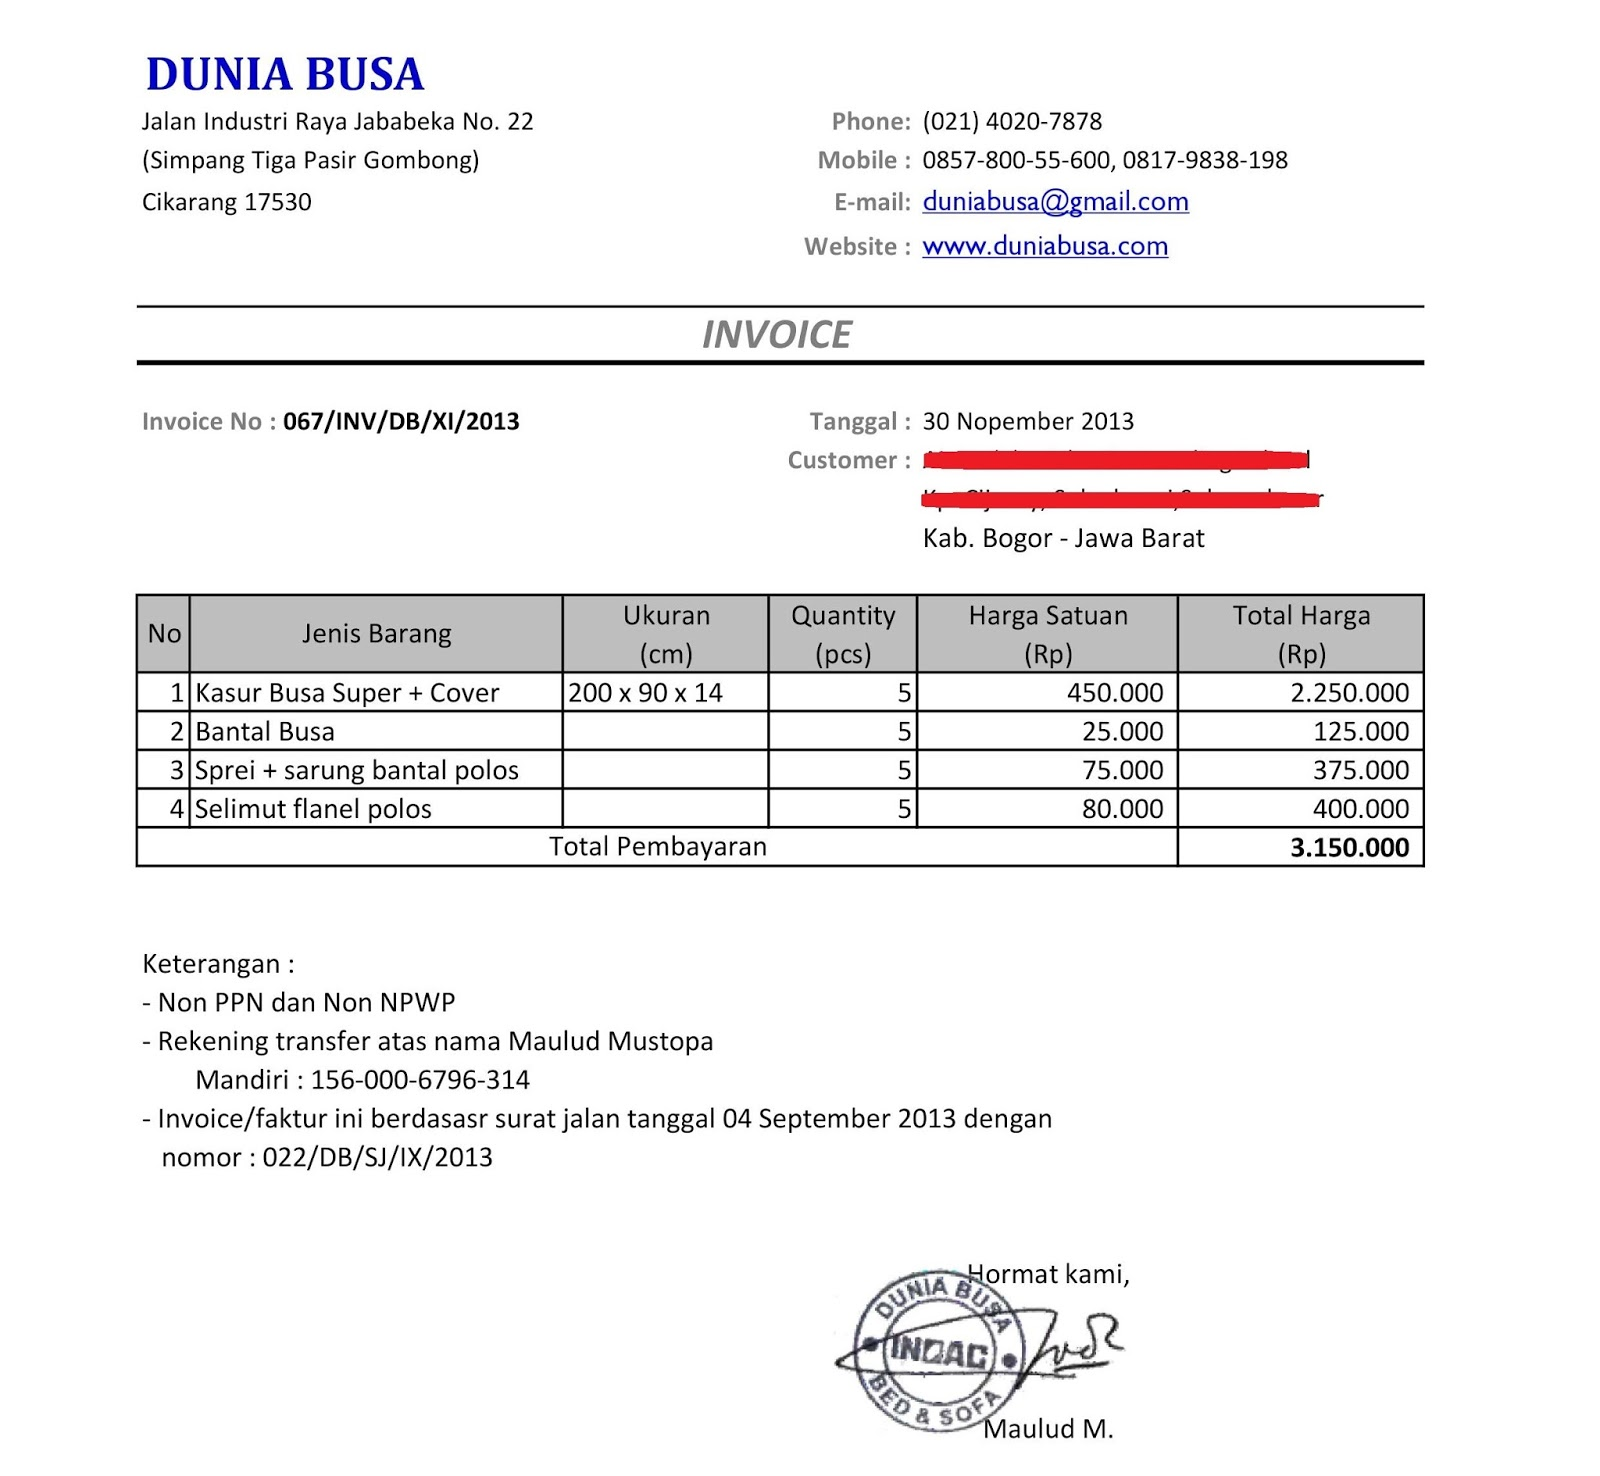 Centralasianshepherdus  Unusual Free Invoice Online  Create Invoice Online  Invoice Template  With Gorgeous Contoh Format Invoice Atau Surat Tagihan  Brankas Arsip  Free Invoice Online With Easy On The Eye Purchase Order Invoice Also Legal Invoice Template In Addition Free Template For Invoice And What Is The Invoice Price Of A Car As Well As Boat Invoice Prices Additionally Free Contractor Invoice Template From Sklepco With Centralasianshepherdus  Gorgeous Free Invoice Online  Create Invoice Online  Invoice Template  With Easy On The Eye Contoh Format Invoice Atau Surat Tagihan  Brankas Arsip  Free Invoice Online And Unusual Purchase Order Invoice Also Legal Invoice Template In Addition Free Template For Invoice From Sklepco